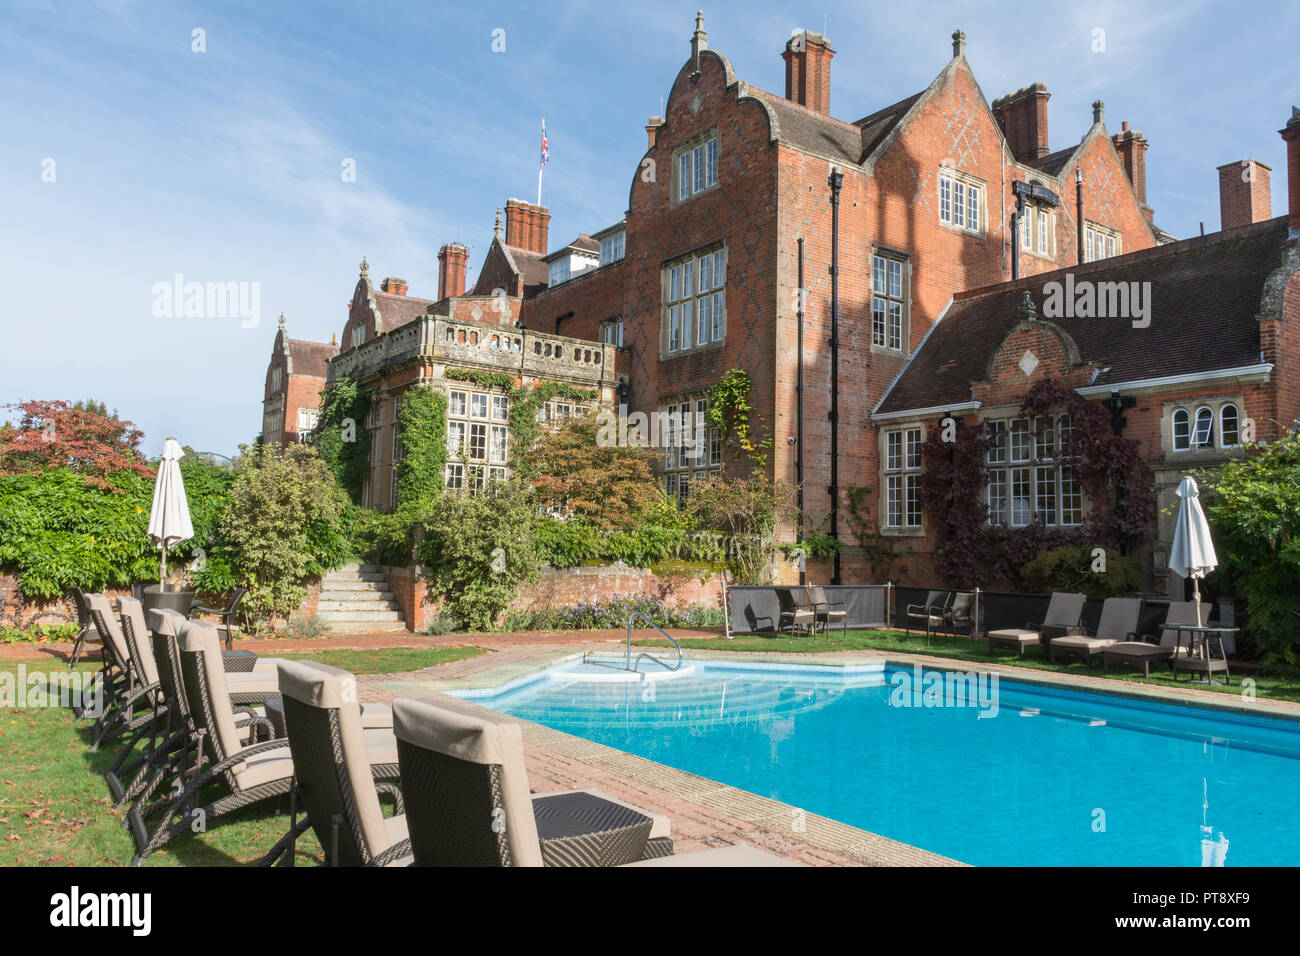 tylney-hall-swimming-pool-and-gardens-a-grand-victorian-mansion-and-now-an-upscale-country-hotel-near-rotherwick-in-hampshire-uk-PT8XF9.jpg